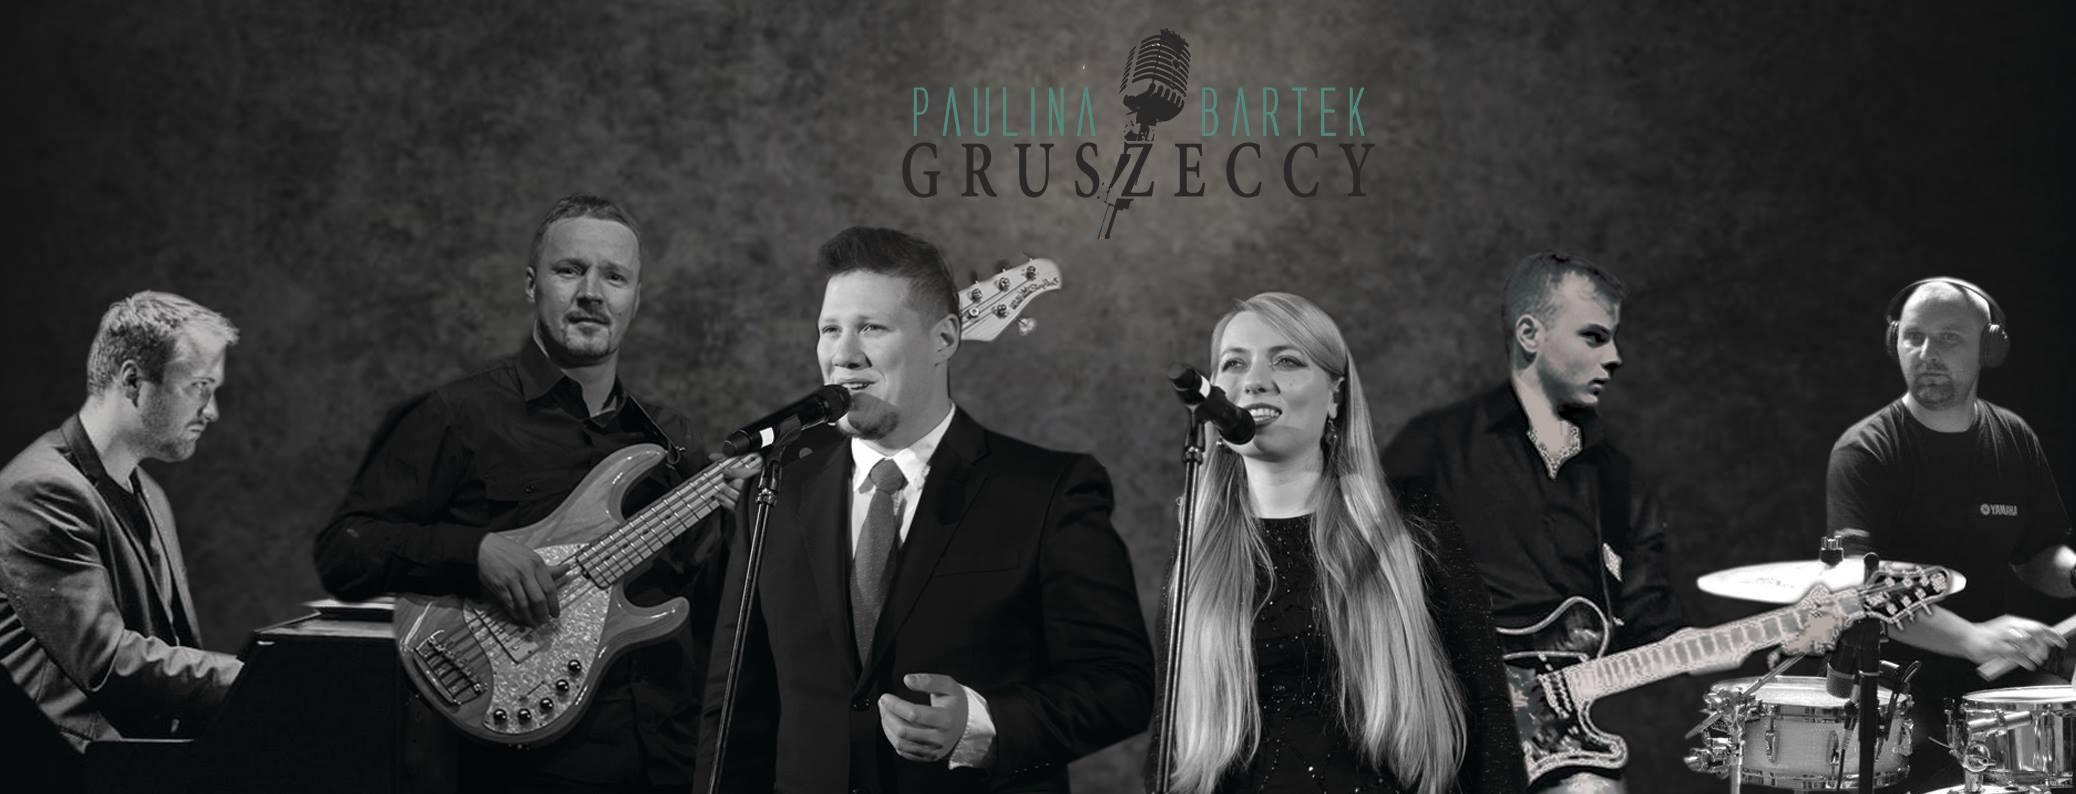 guszeccy